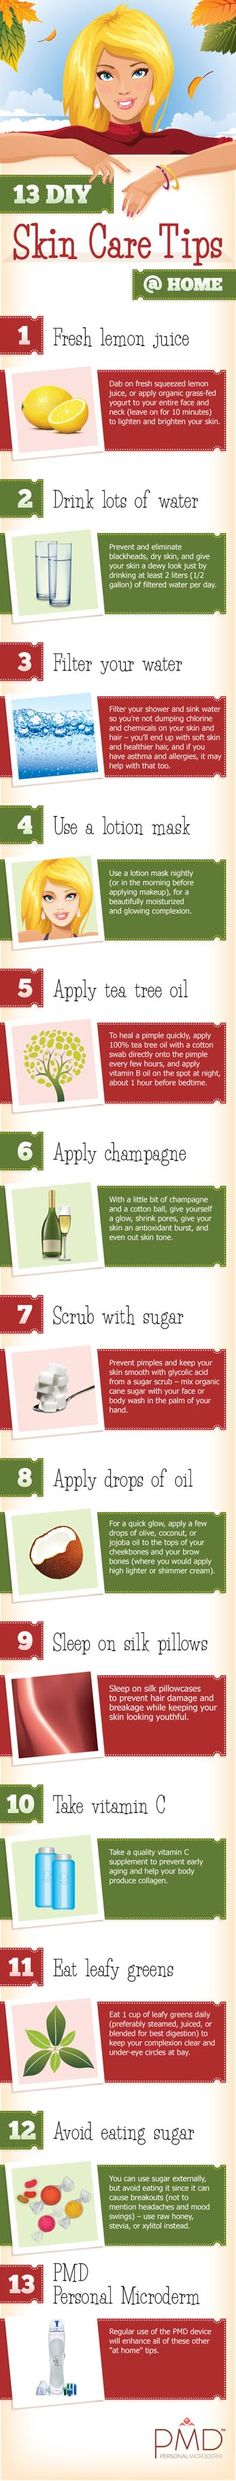 13 #DIY Skin Care Tips @ Home! Great for #Fall and these cold months ahead of us! #beauty #skincare